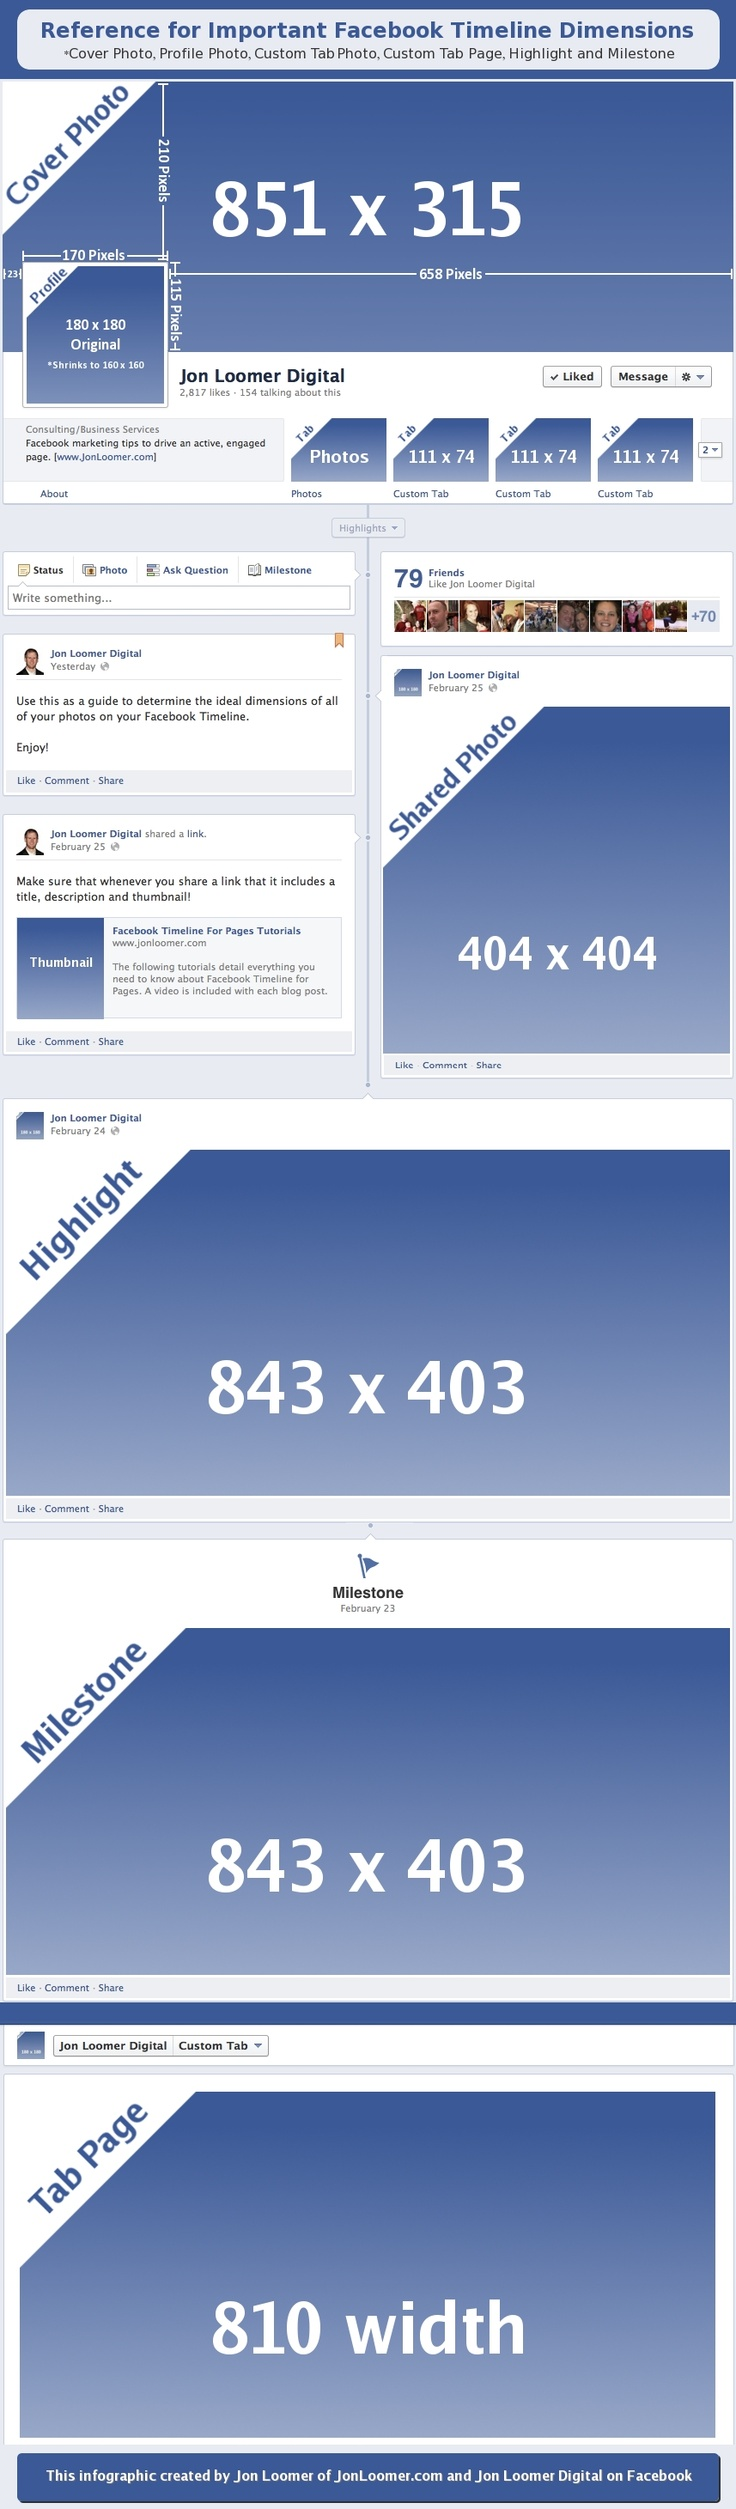 Optimize images for FB timeline for pages